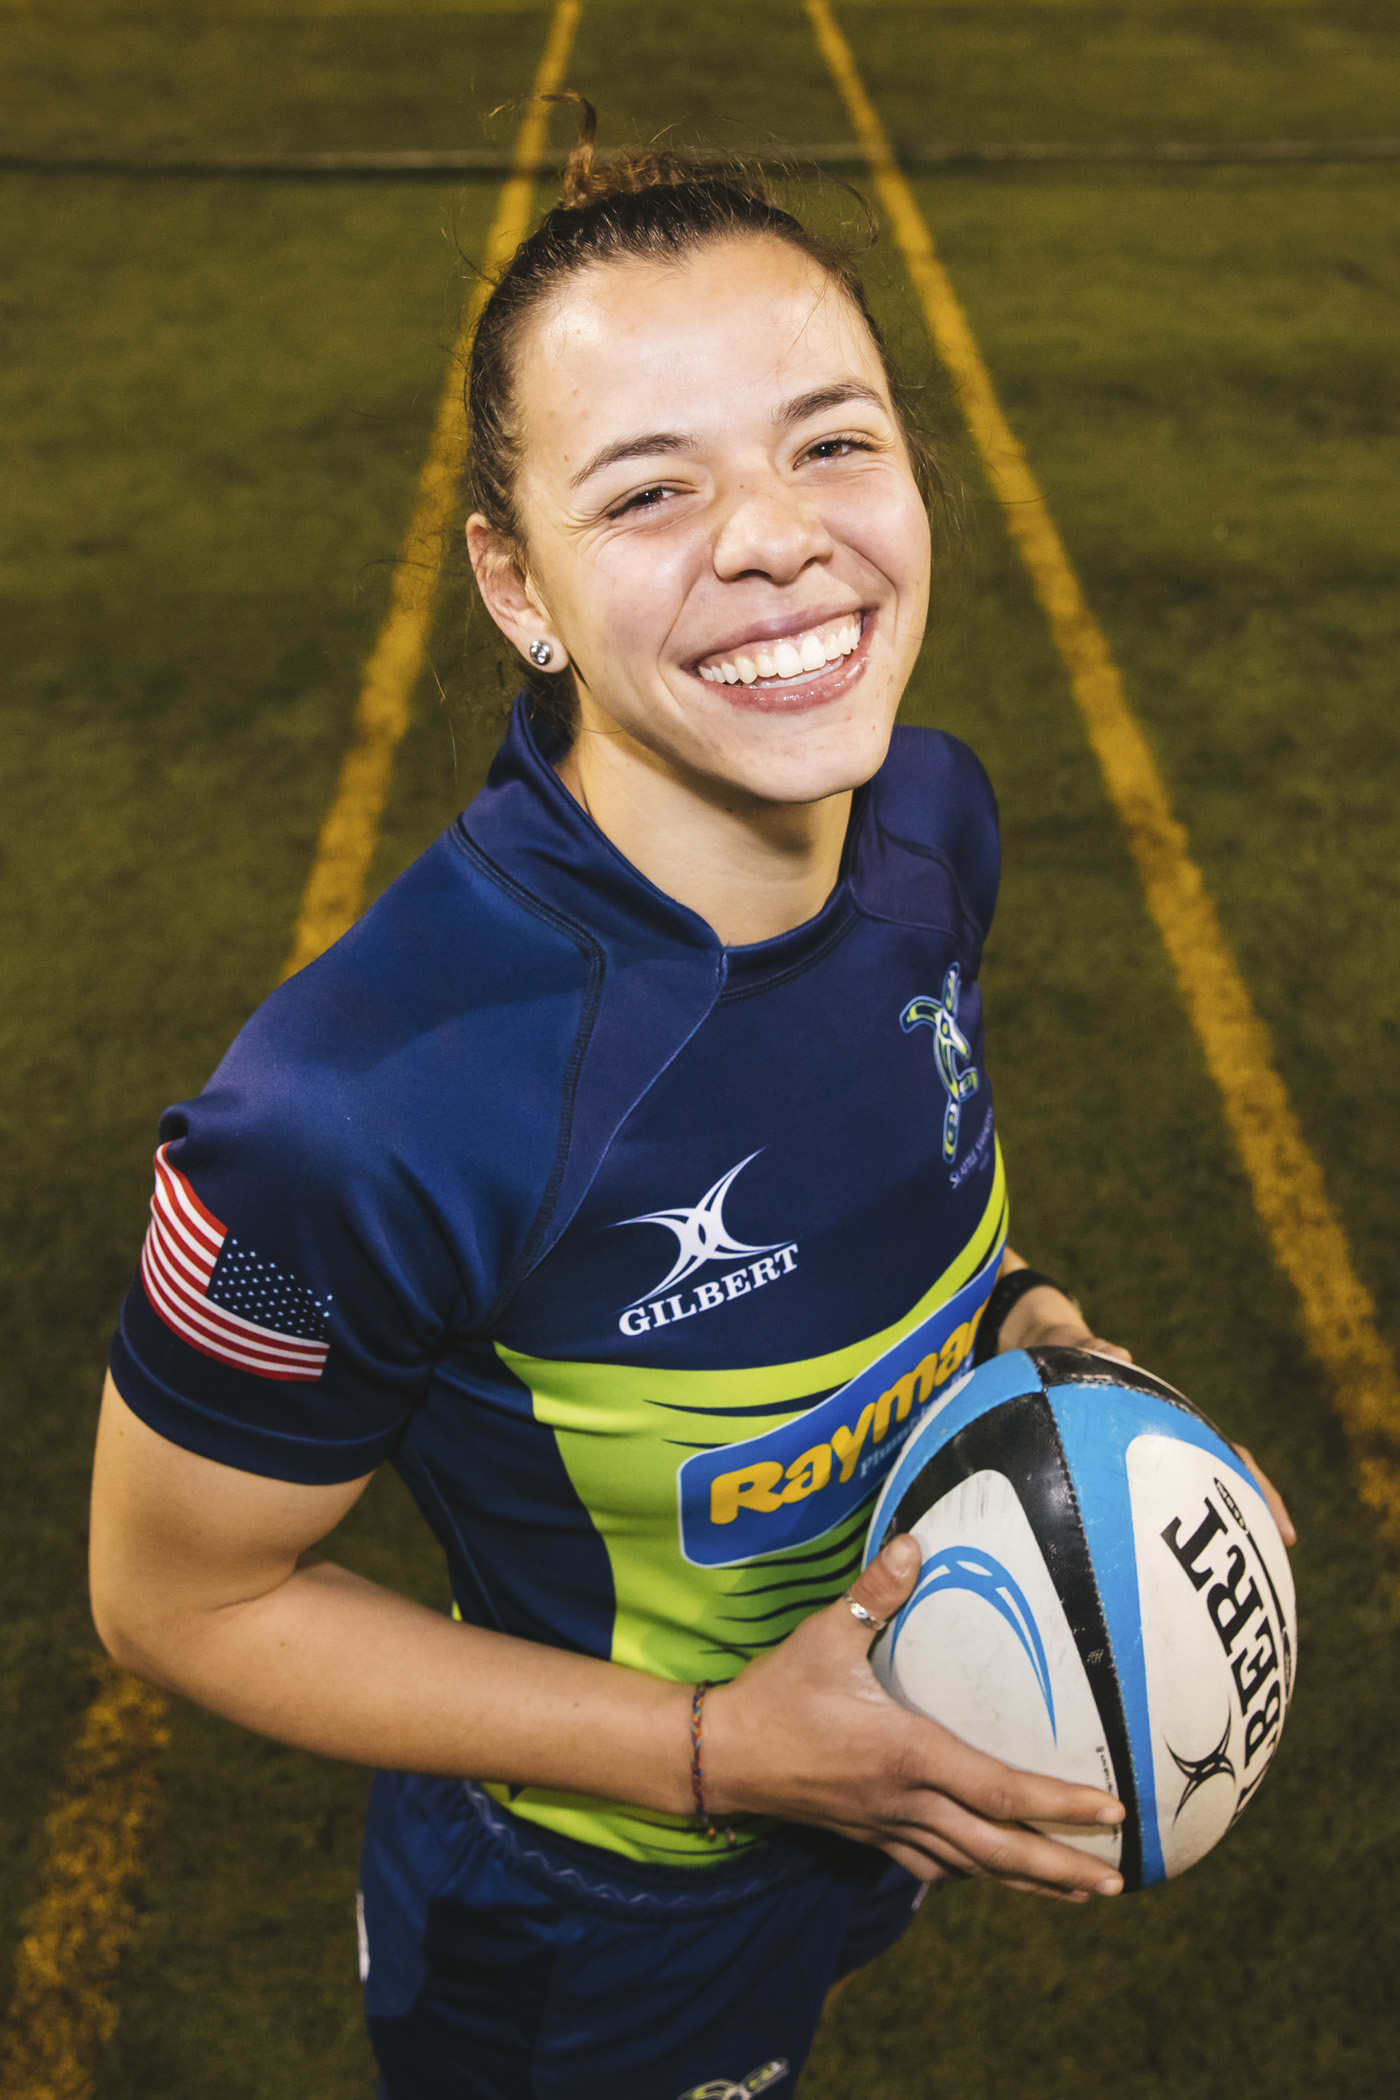 Meet Stefani! Stefani plays flanker and she loves avocados and the Breakfast Club (Image: Sunita Martini / Seattle Refined).